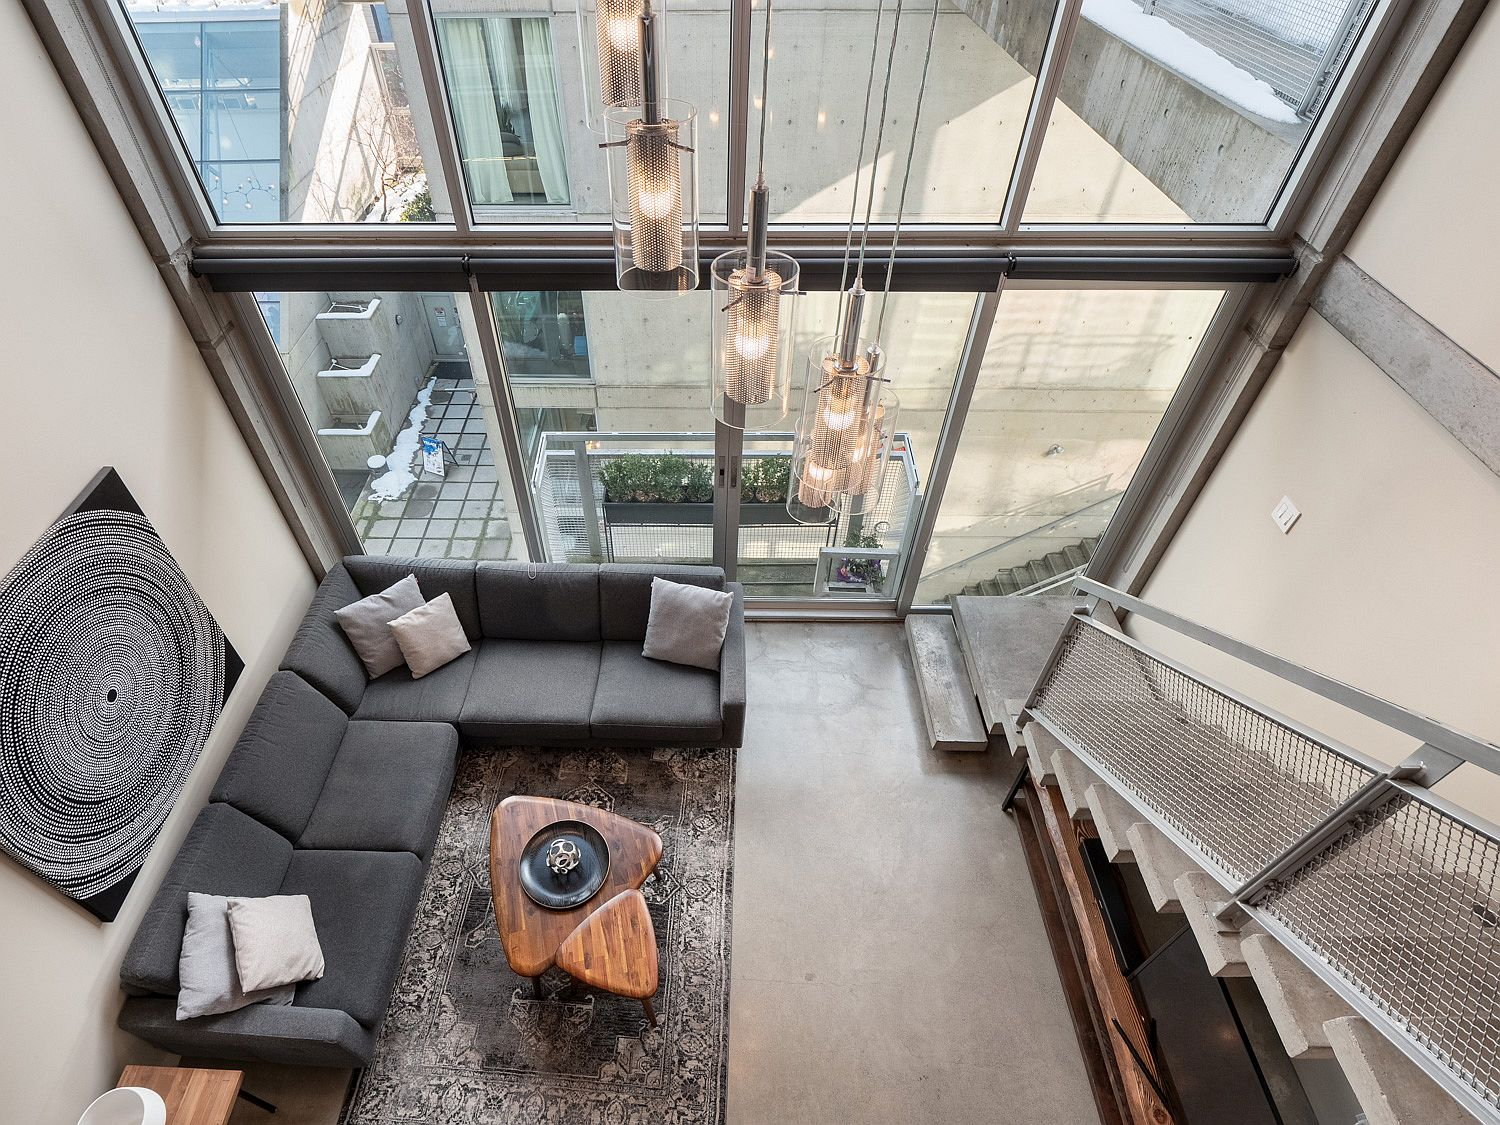 Dream Contemporary Loft Sits Snugly Inside Vancouver's Iconic Waterfall Building